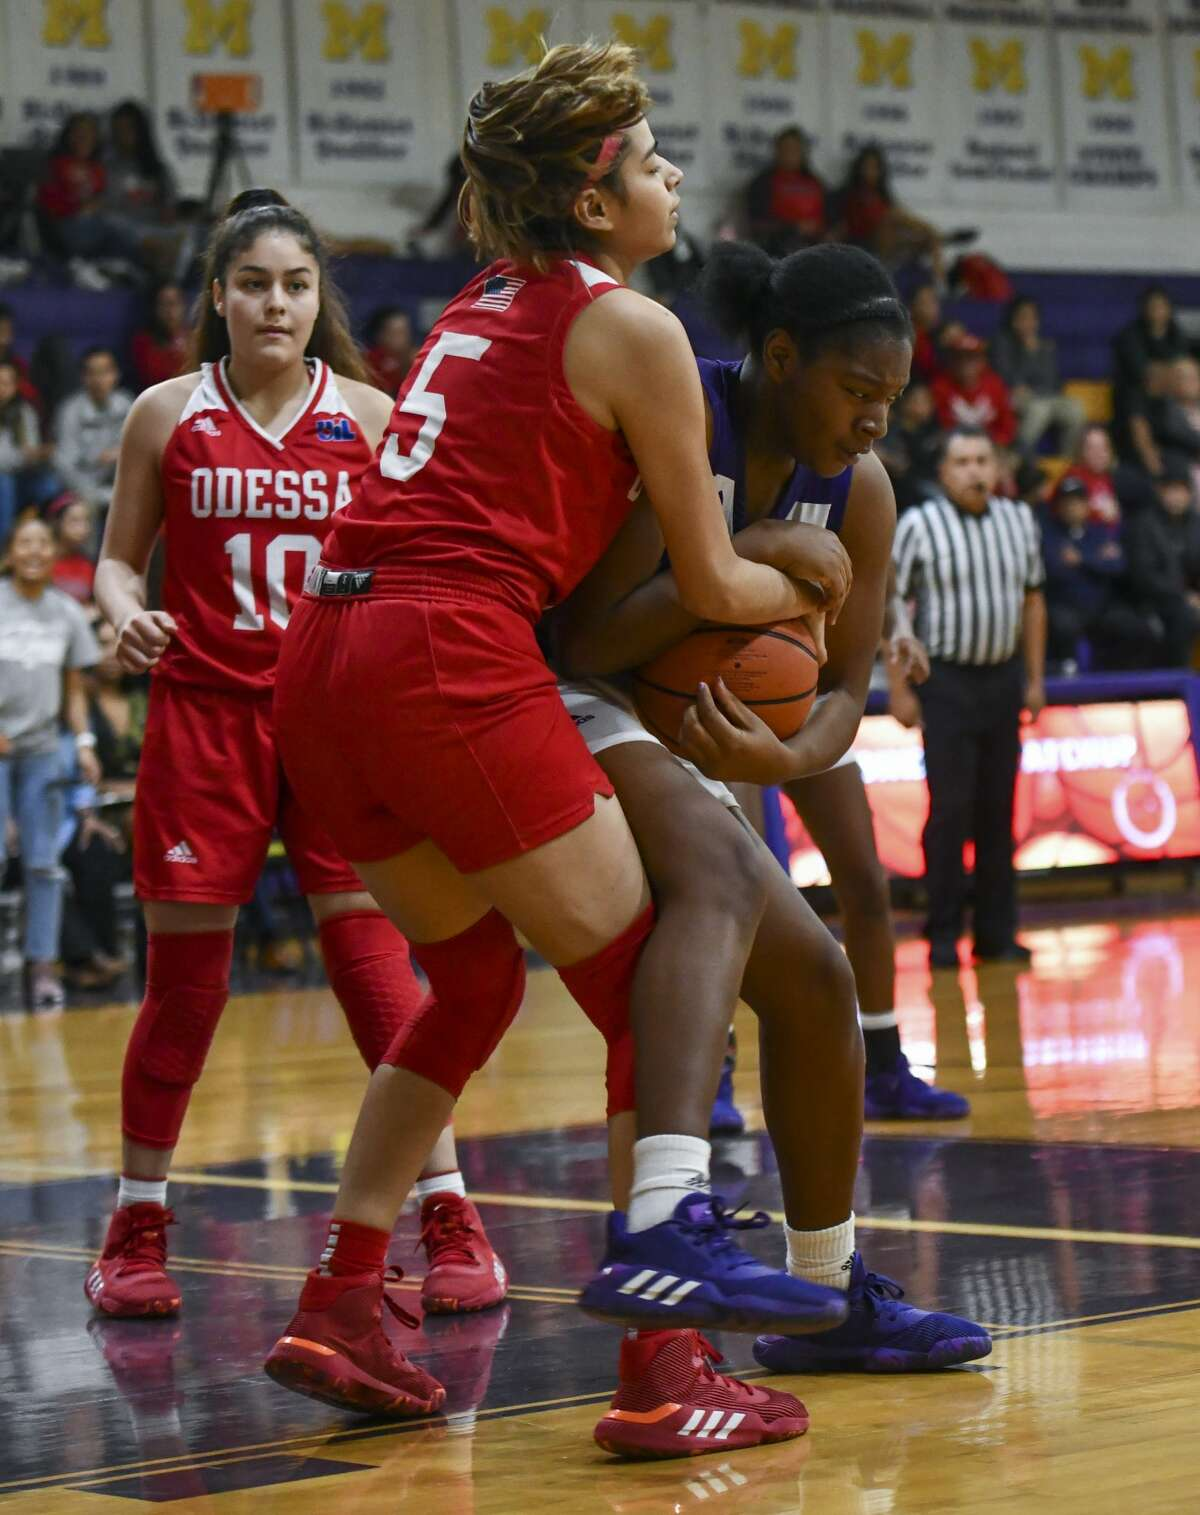 Midland High's Ty'Eisha Satterwhite and Odessa High's Amber Escantrias battle for the ball Tuesday, Jan. 28, 2020 at Midland High School.